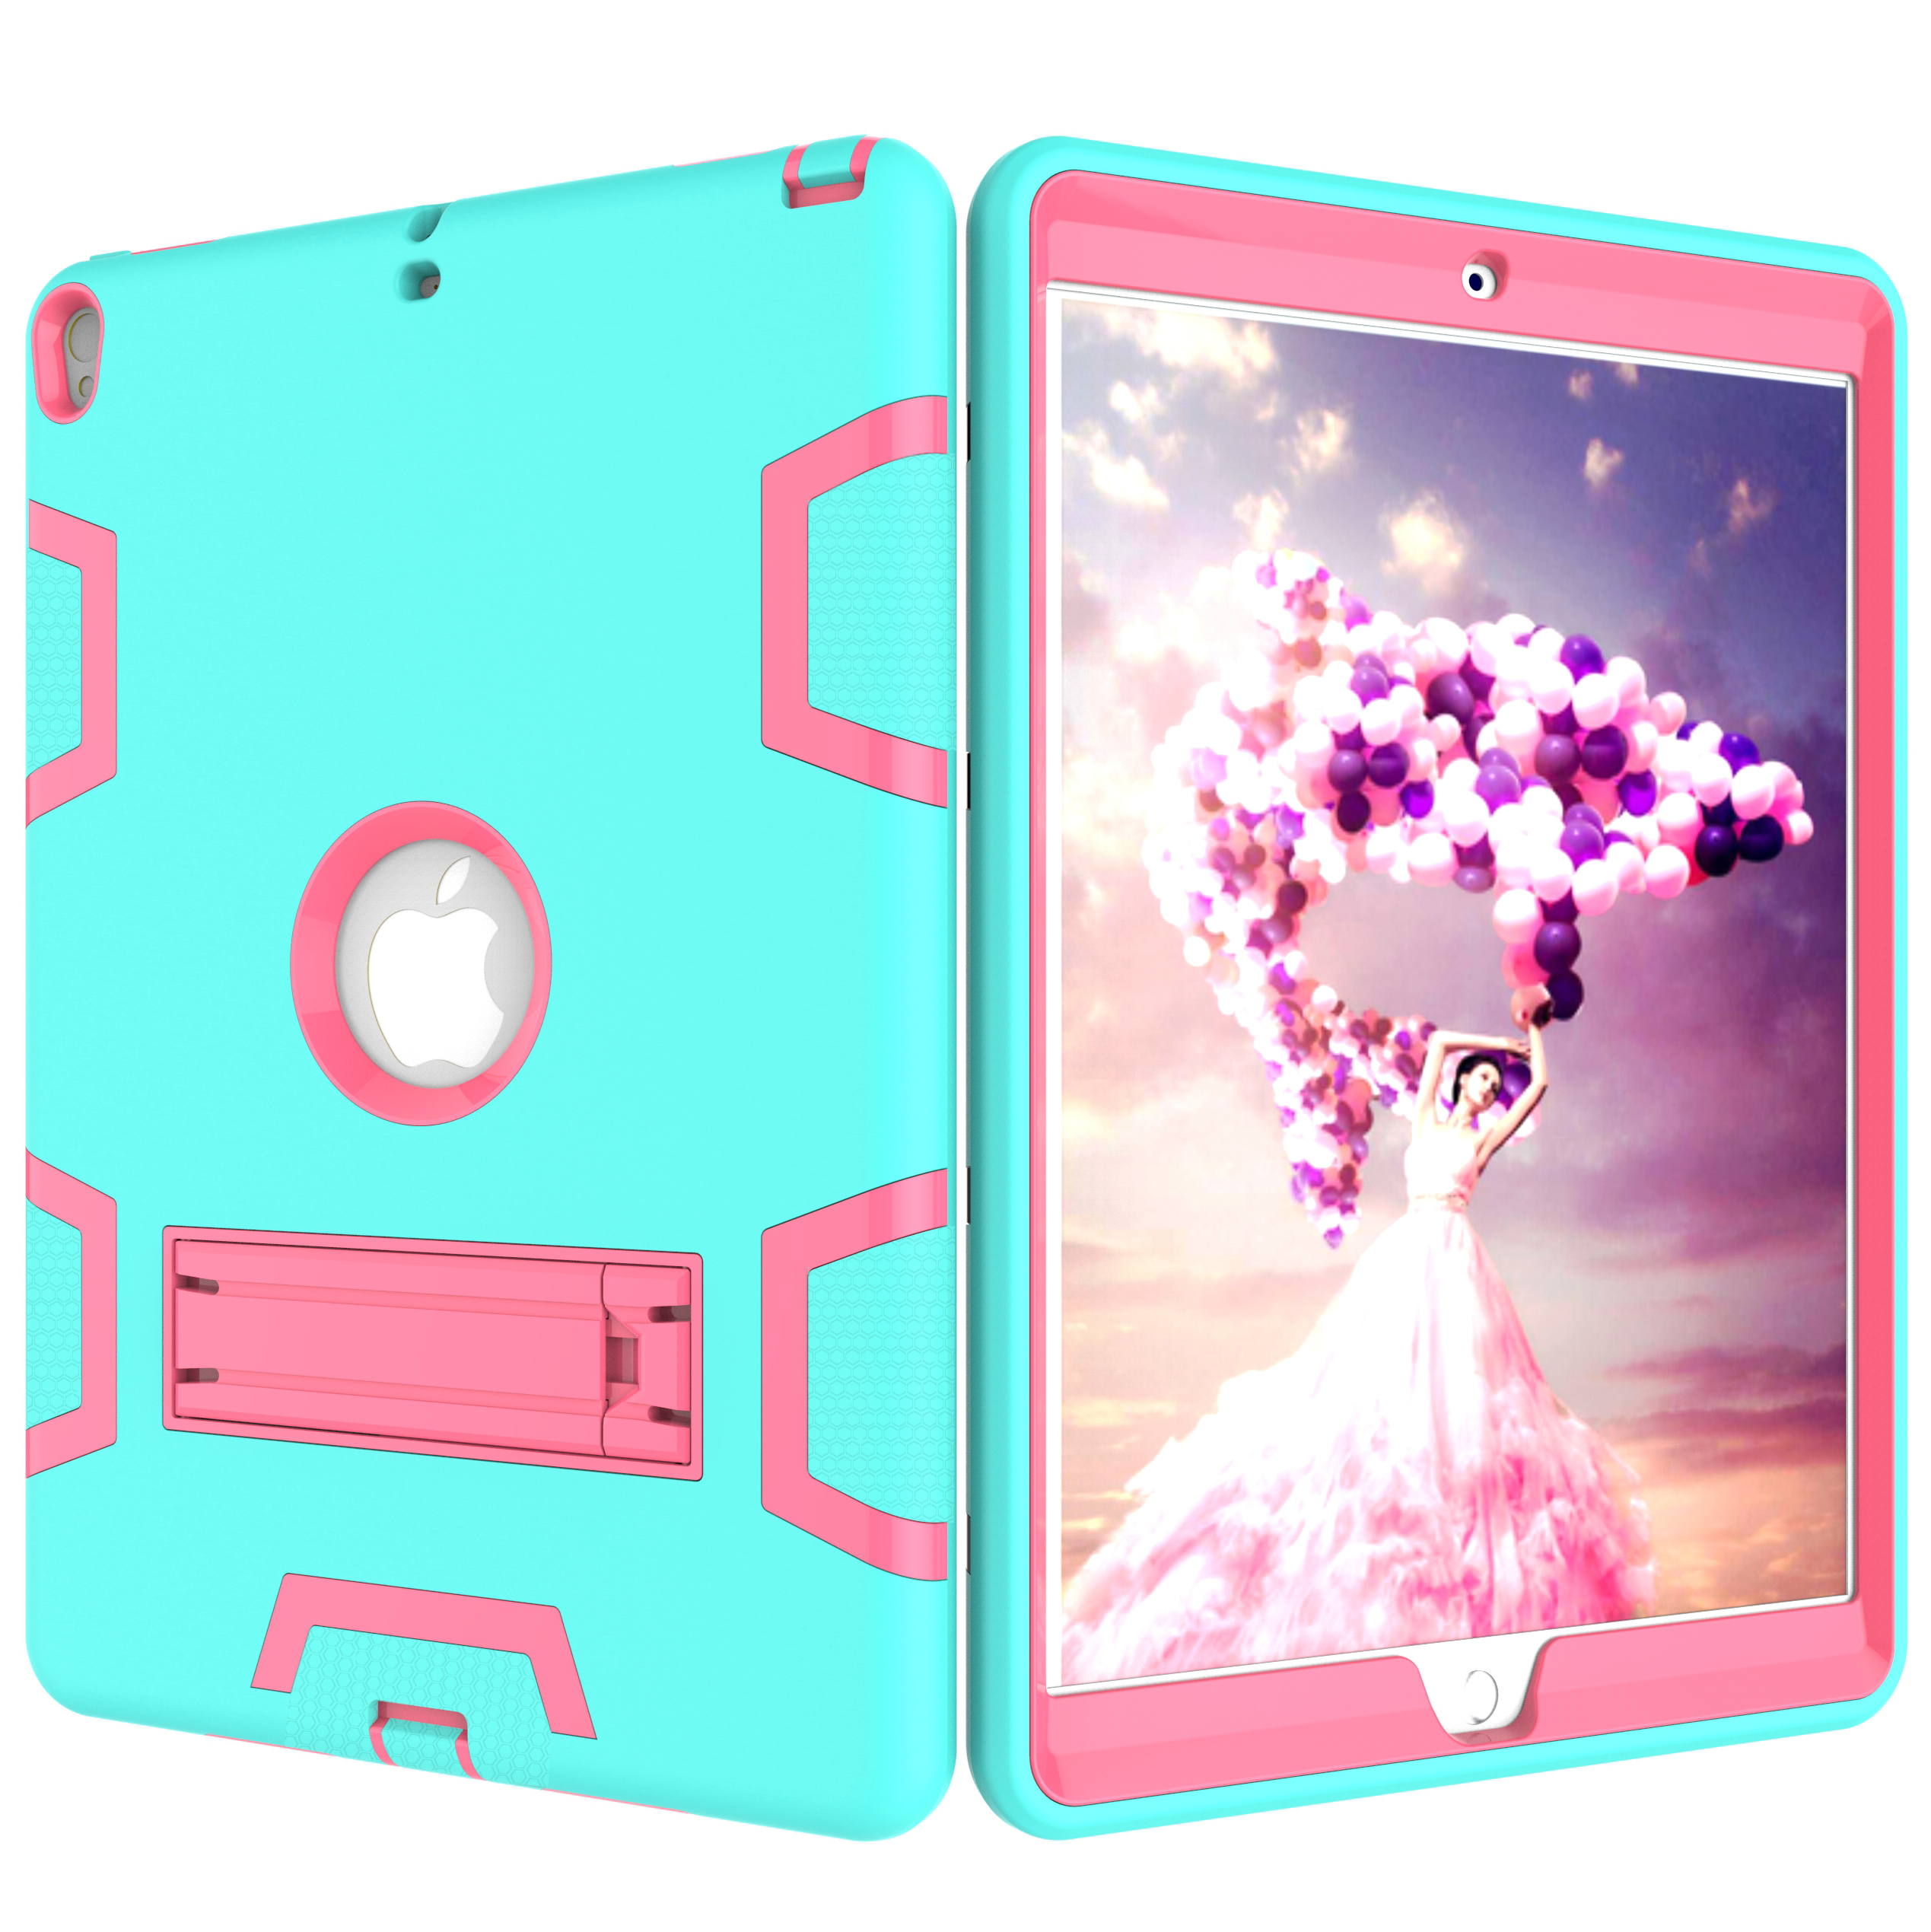 Conlez for iPad Air 3 10 5 Inch 2019 Heavy Duty Hybrid Shockproof Amor Case Back Cover Protective Case for iPad Pro 10 5 39 39 2017 in Tablets amp e Books Case from Computer amp Office